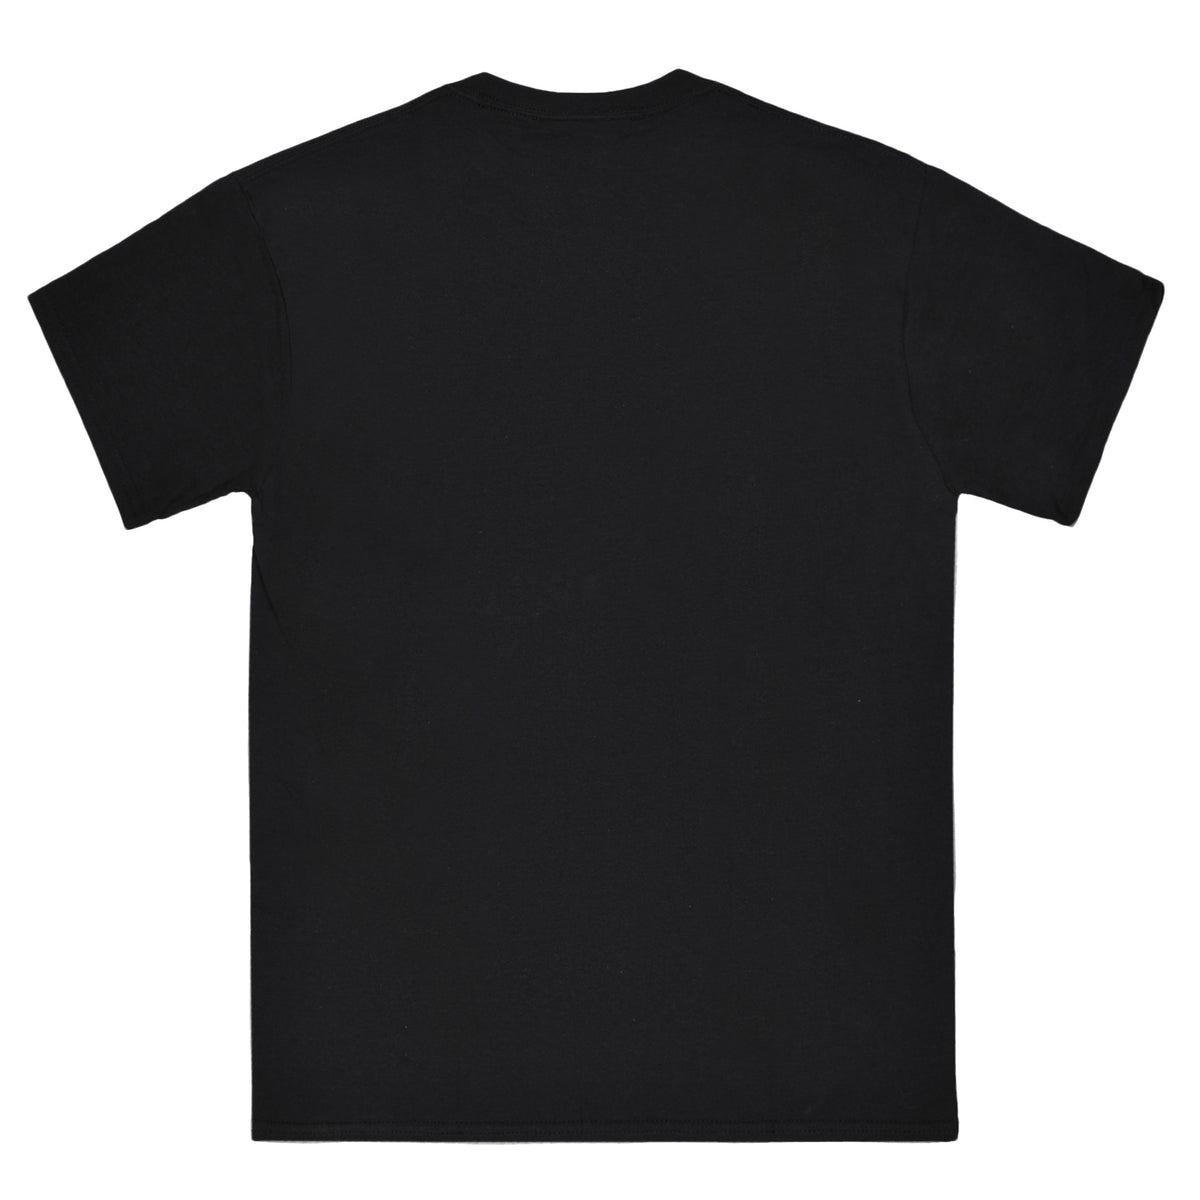 TOYS RAVE black tee - RAVE skateboards